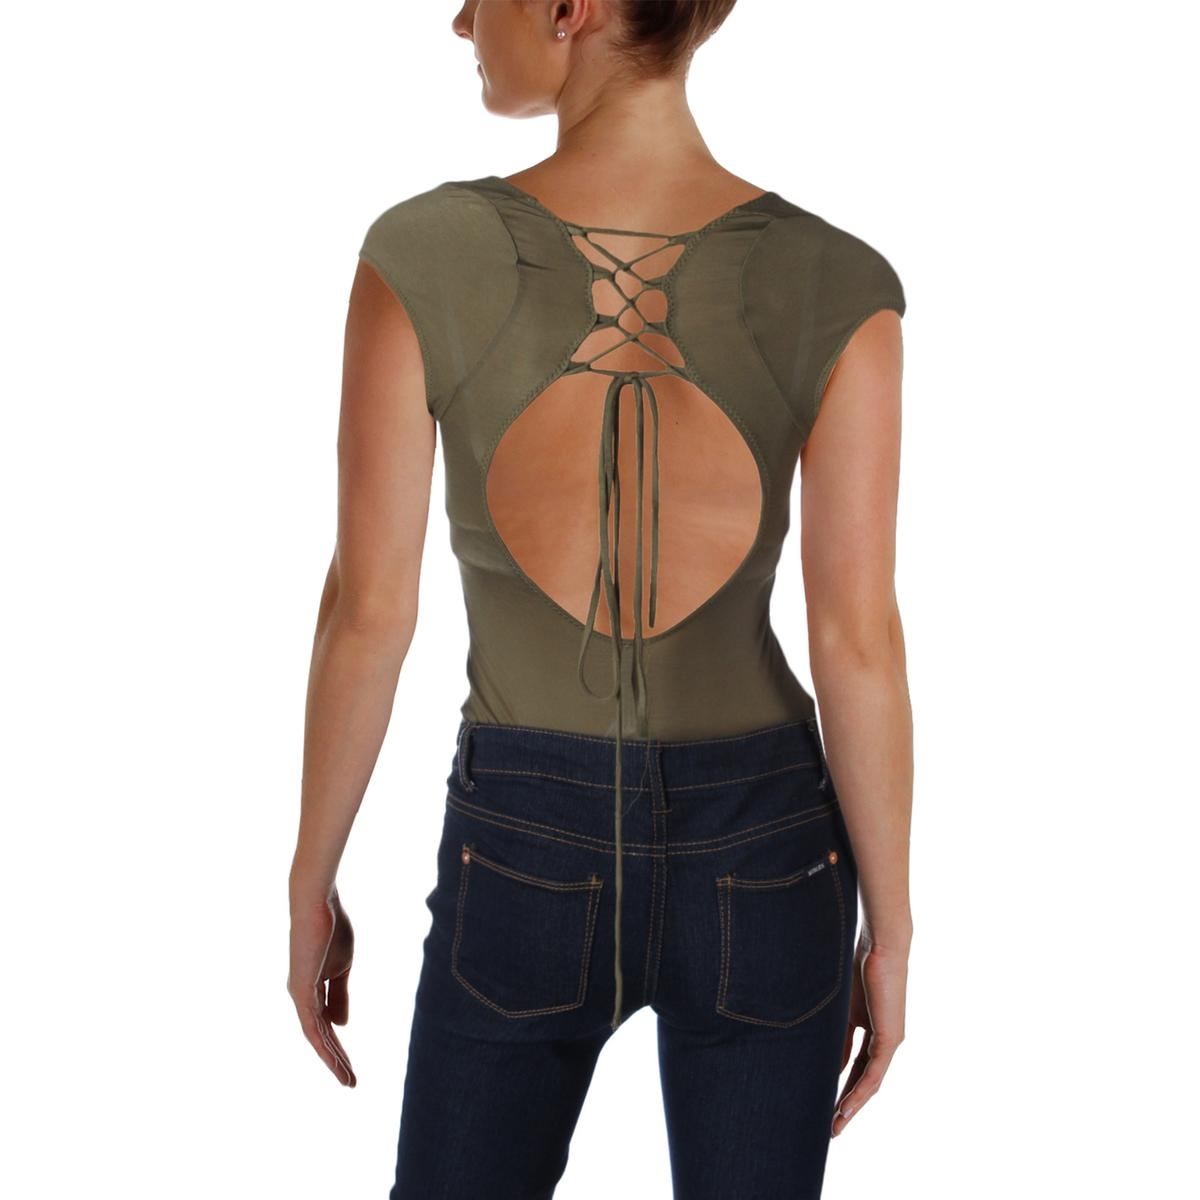 Buy Intimately People Womens All About The Back Green Bodysuit M ... b1e27524f